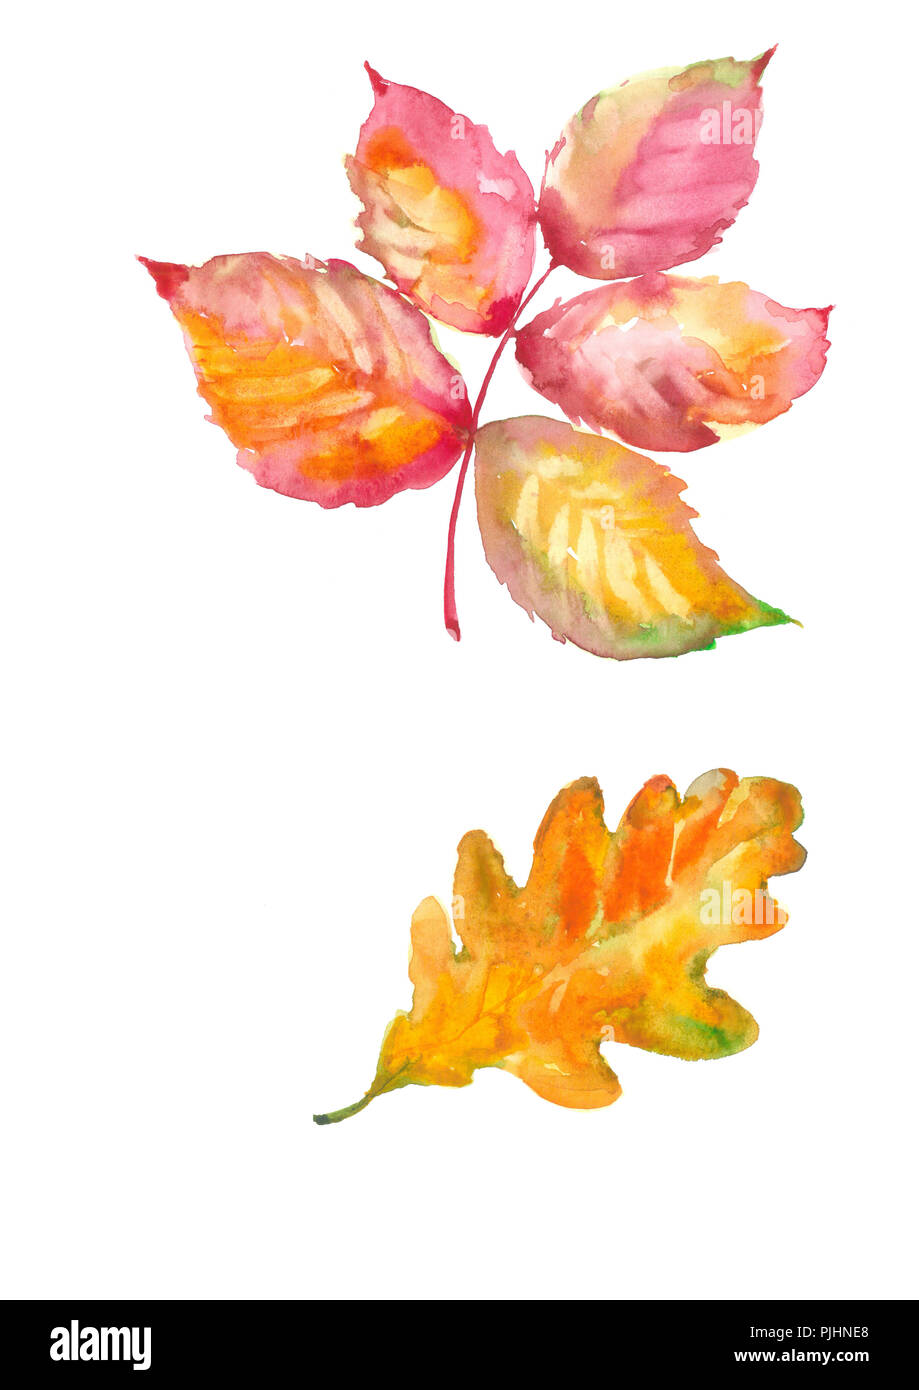 Delicate autumn leaf of Raspberry. Oak Leaf. Watercolor natural background. - Stock Image